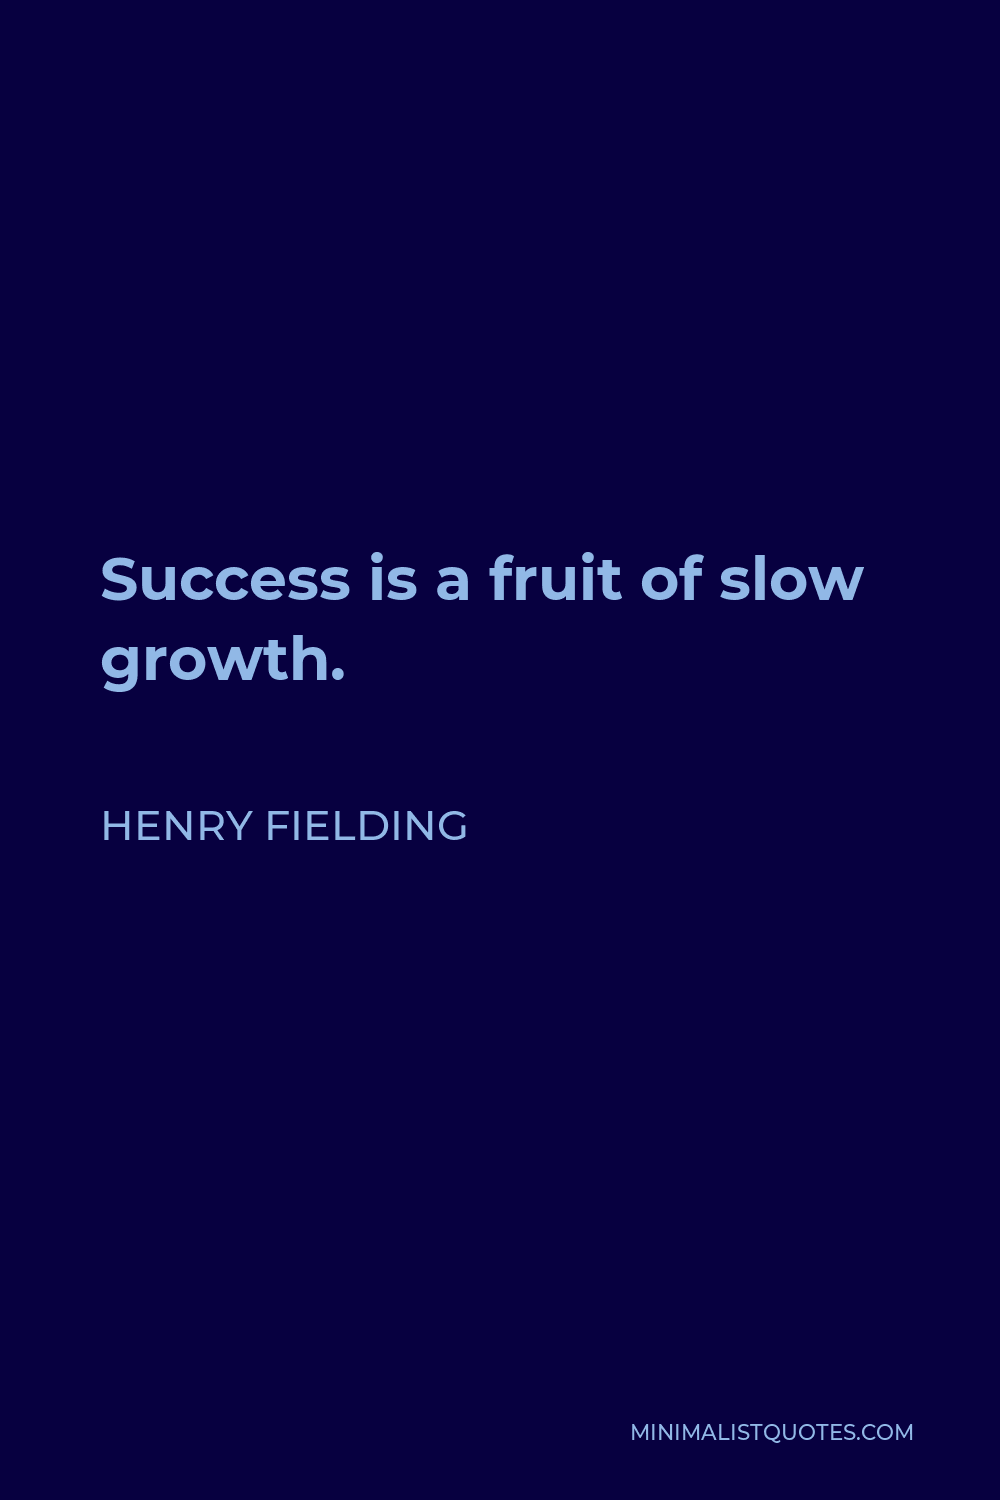 Henry Fielding Quote - Success is a fruit of slow growth.